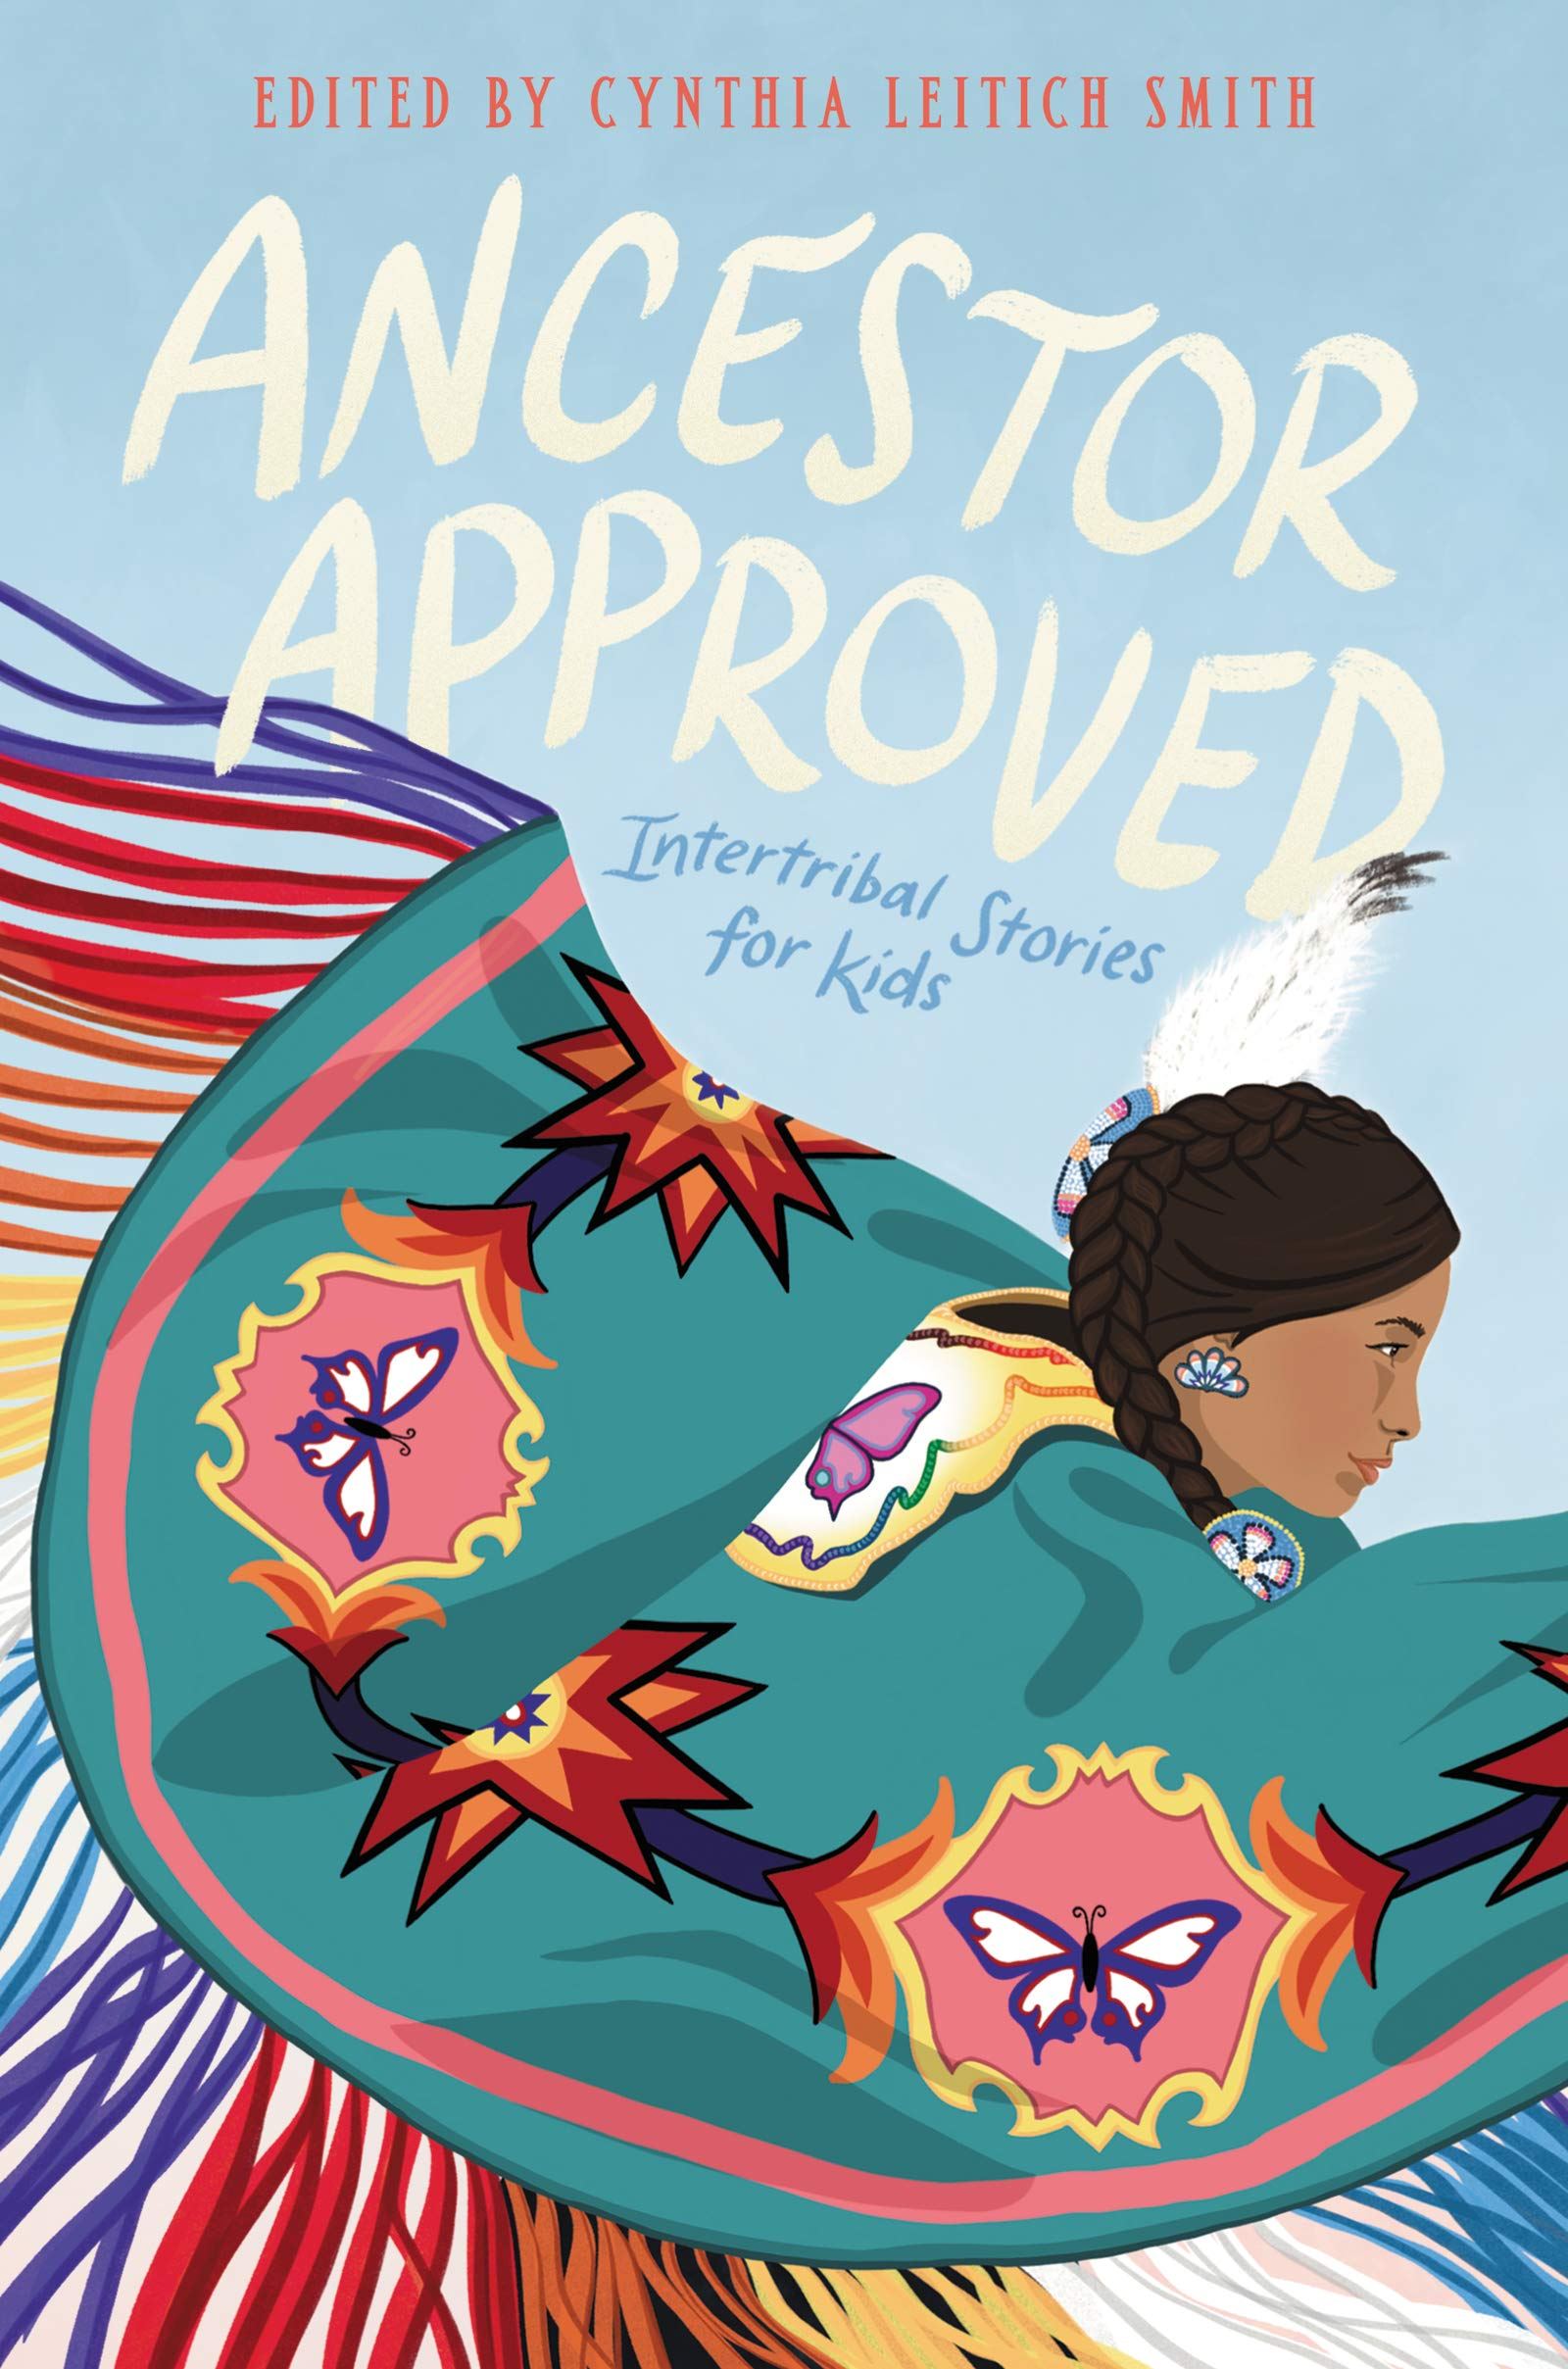 Amazing 2021 Books for Students: Ancestor Approved: Intertribal Stories for Kids: Cynthia Leitich Smith